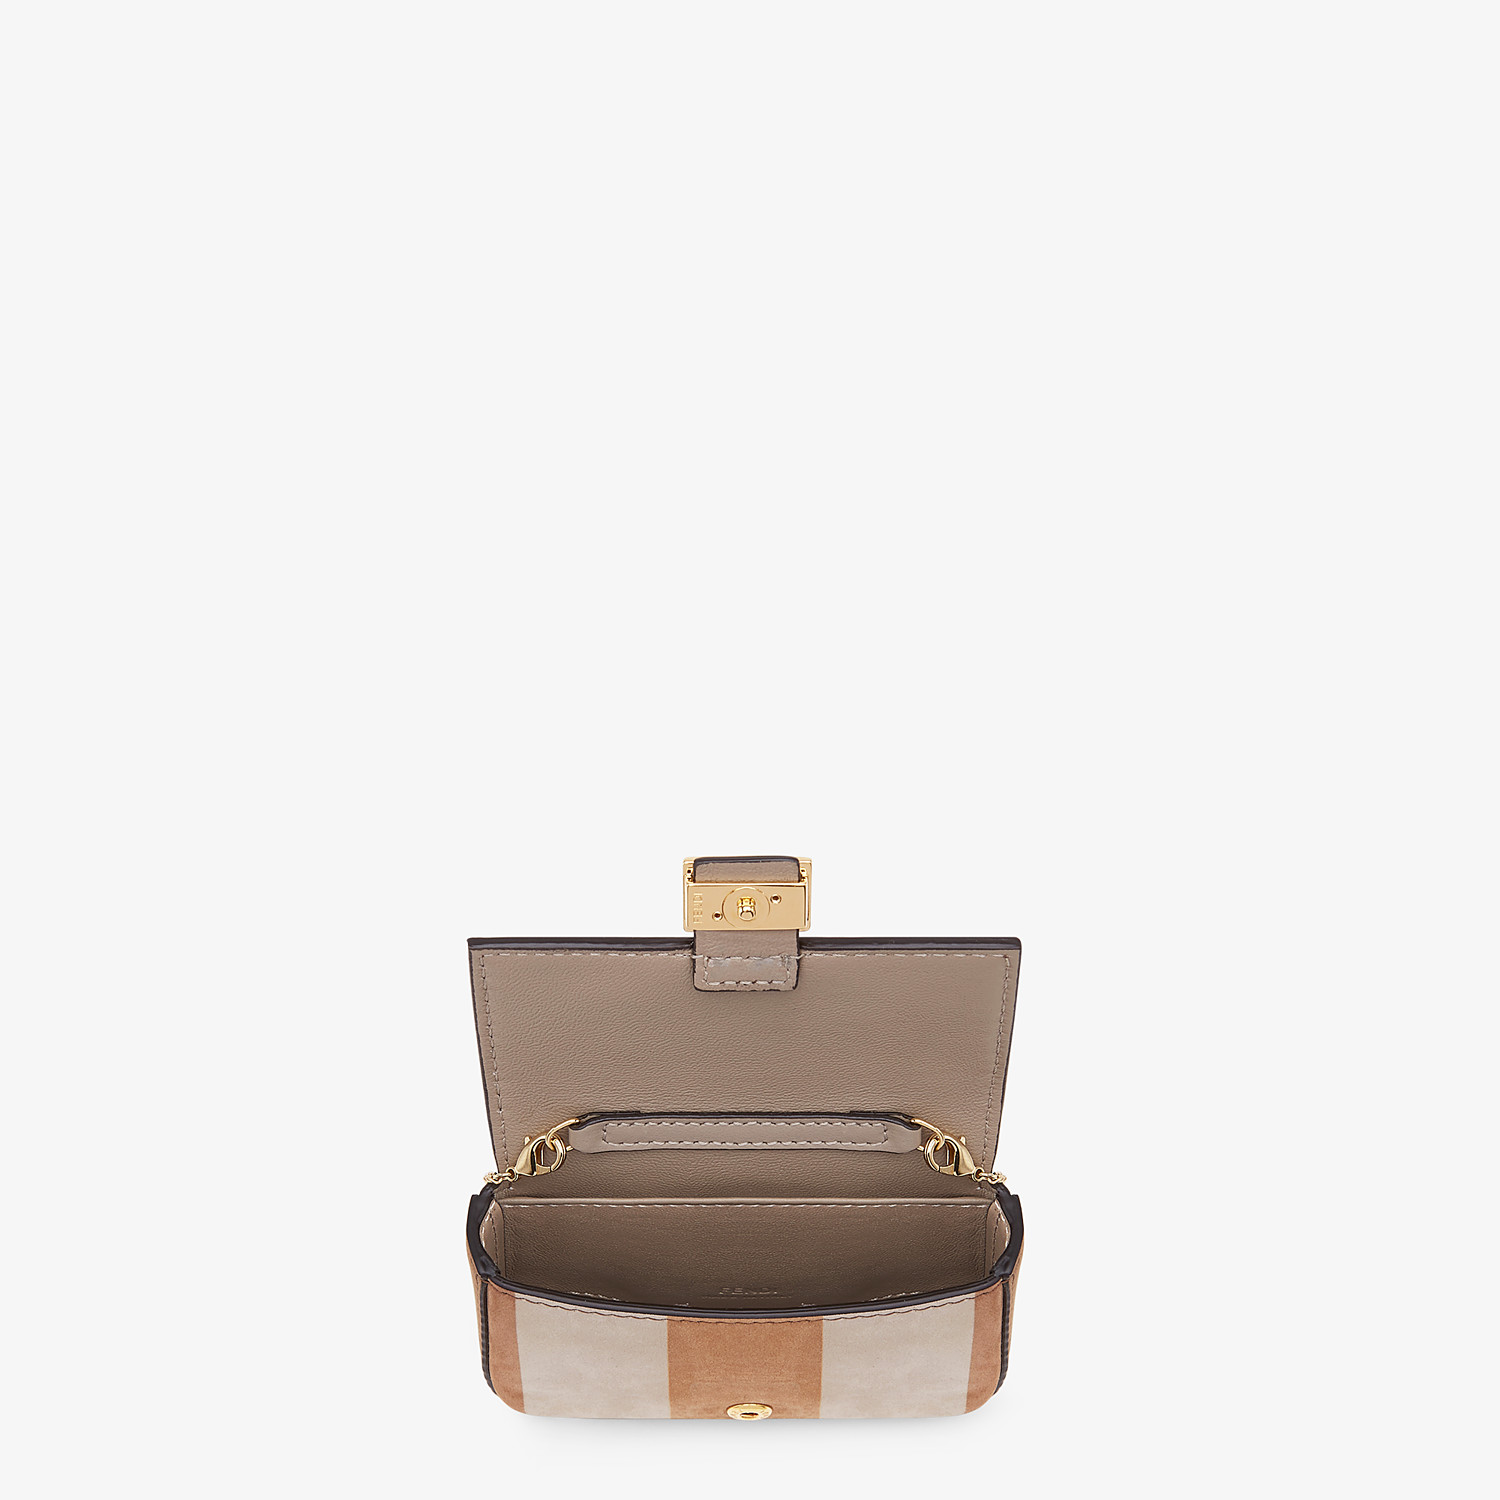 FENDI NANO BAGUETTE - Beige nubuck leather charm - view 5 detail